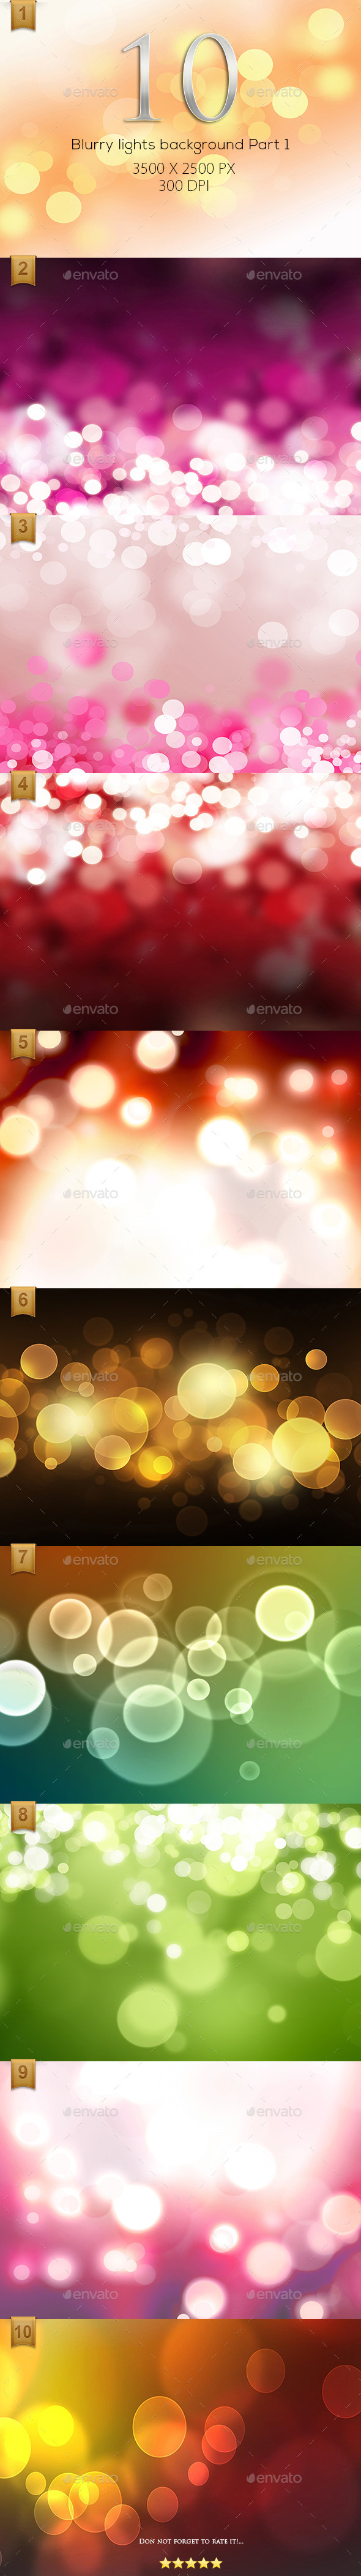 10 Blurry lights background High Resolution Part 1 - Backgrounds Graphics